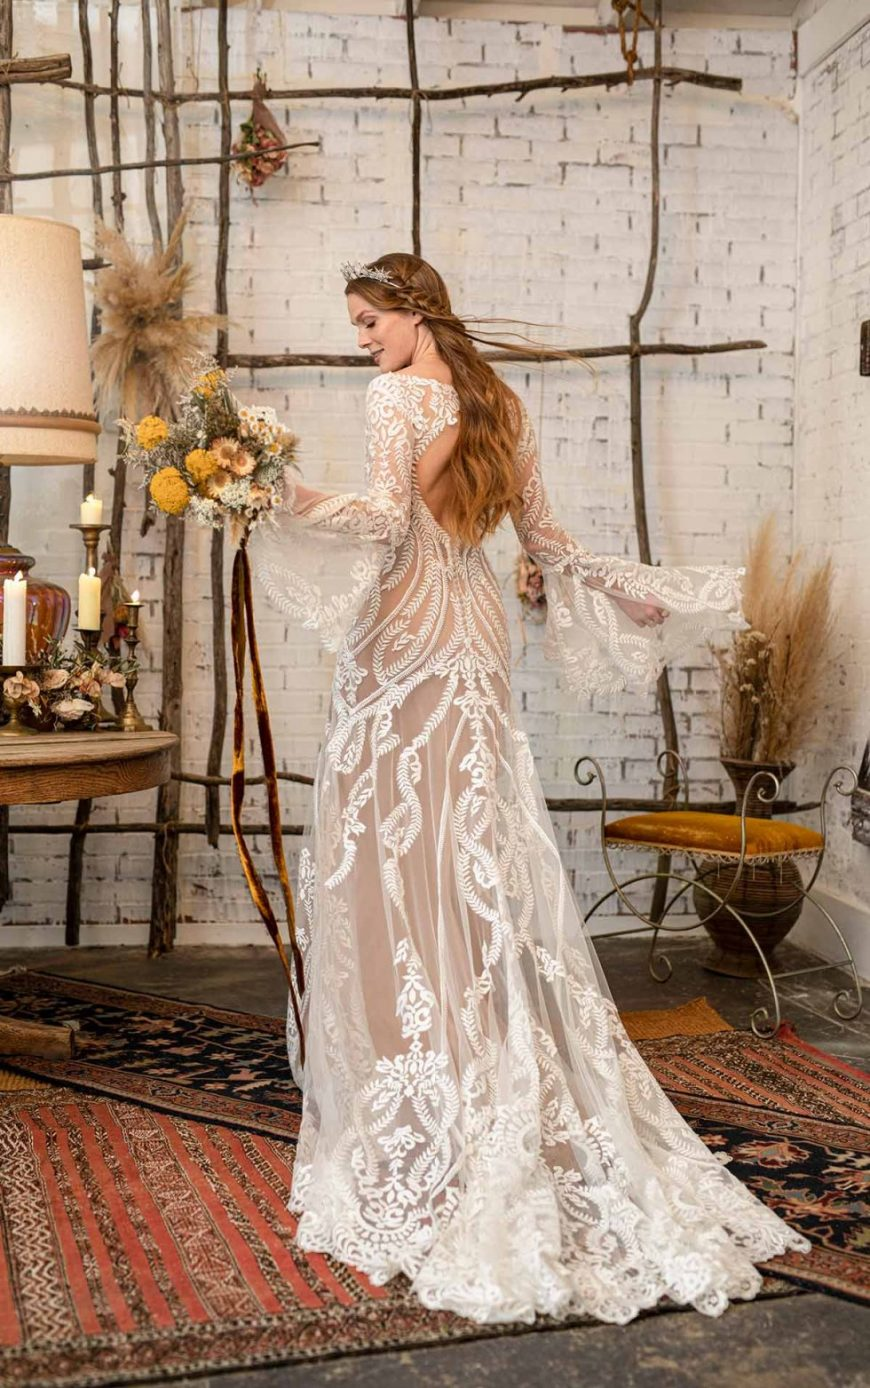 Fit-and-flare Lace Flared sleeves Keyhole back. Lenox All Who Wander Tuscany Bridal